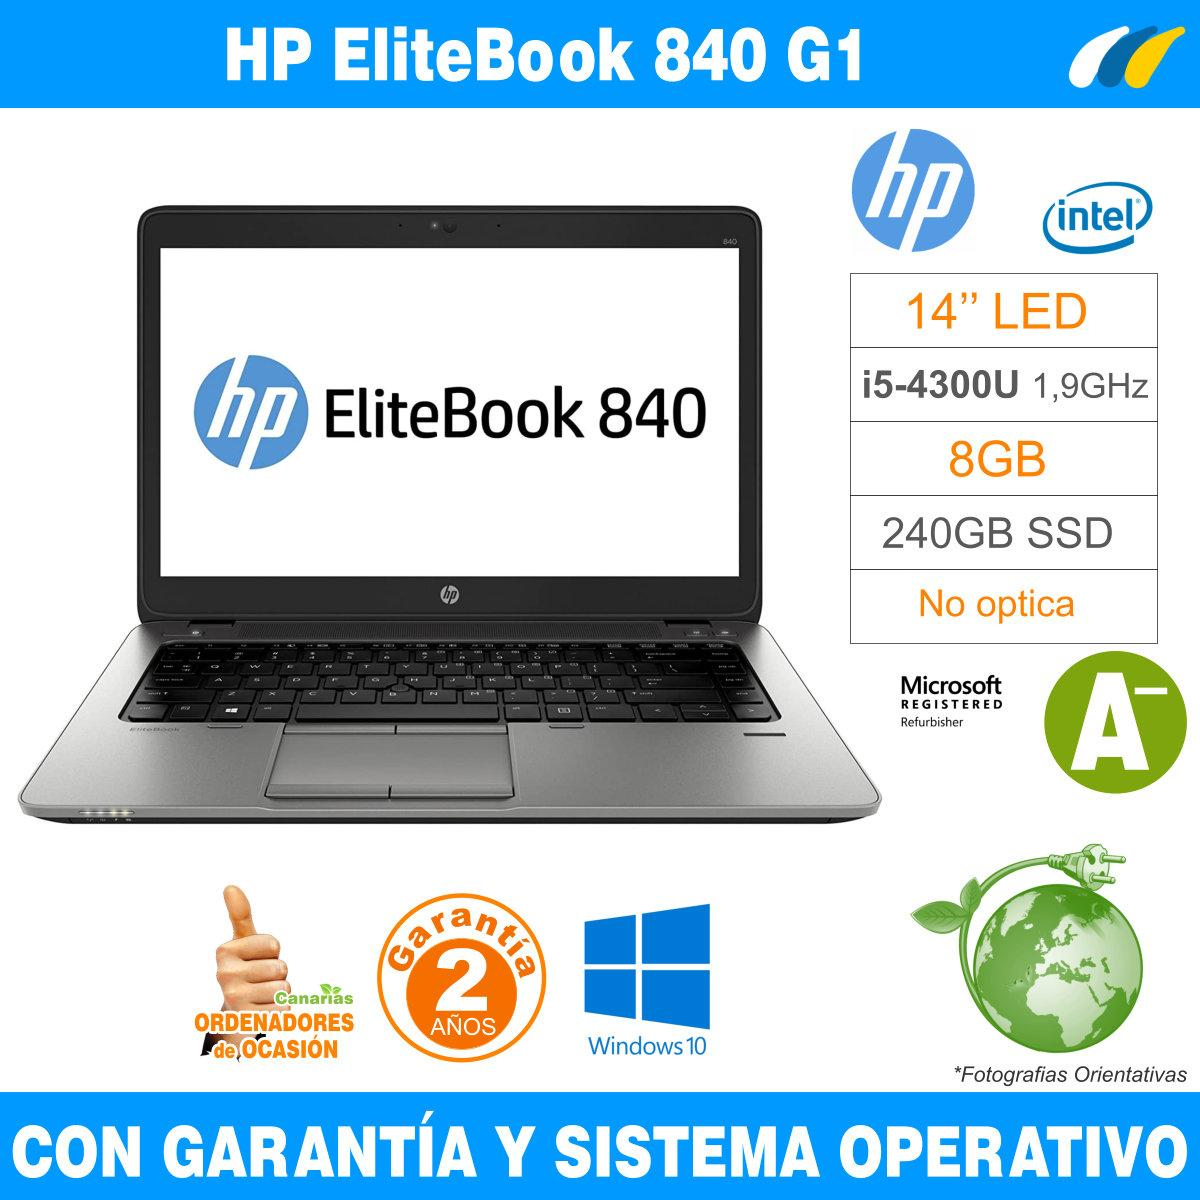 Intel i5-4300U 1,90 GHz  – 8GB – 240 GB SSD  - HP EliteBook 840 G1